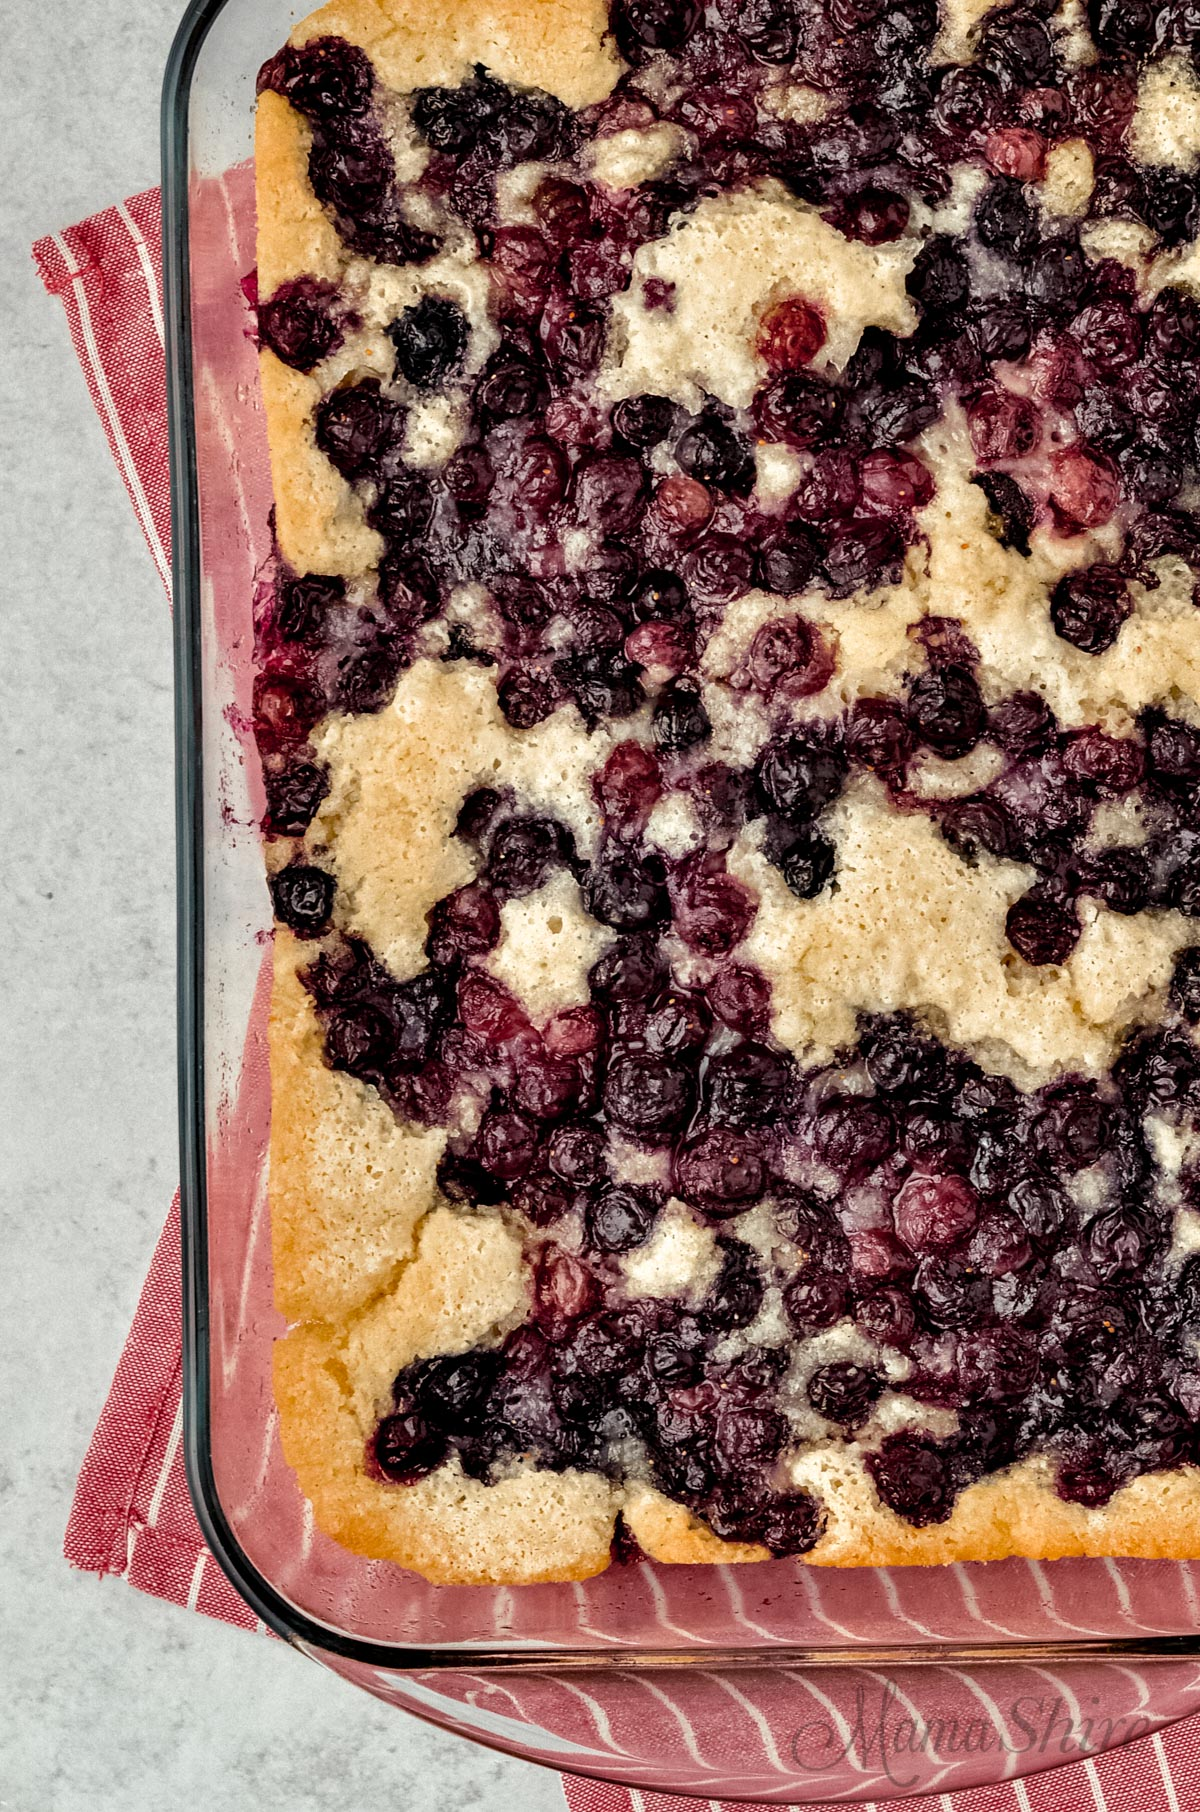 Delicious gluten-free blueberry cobbler with a hint of cinnamon.